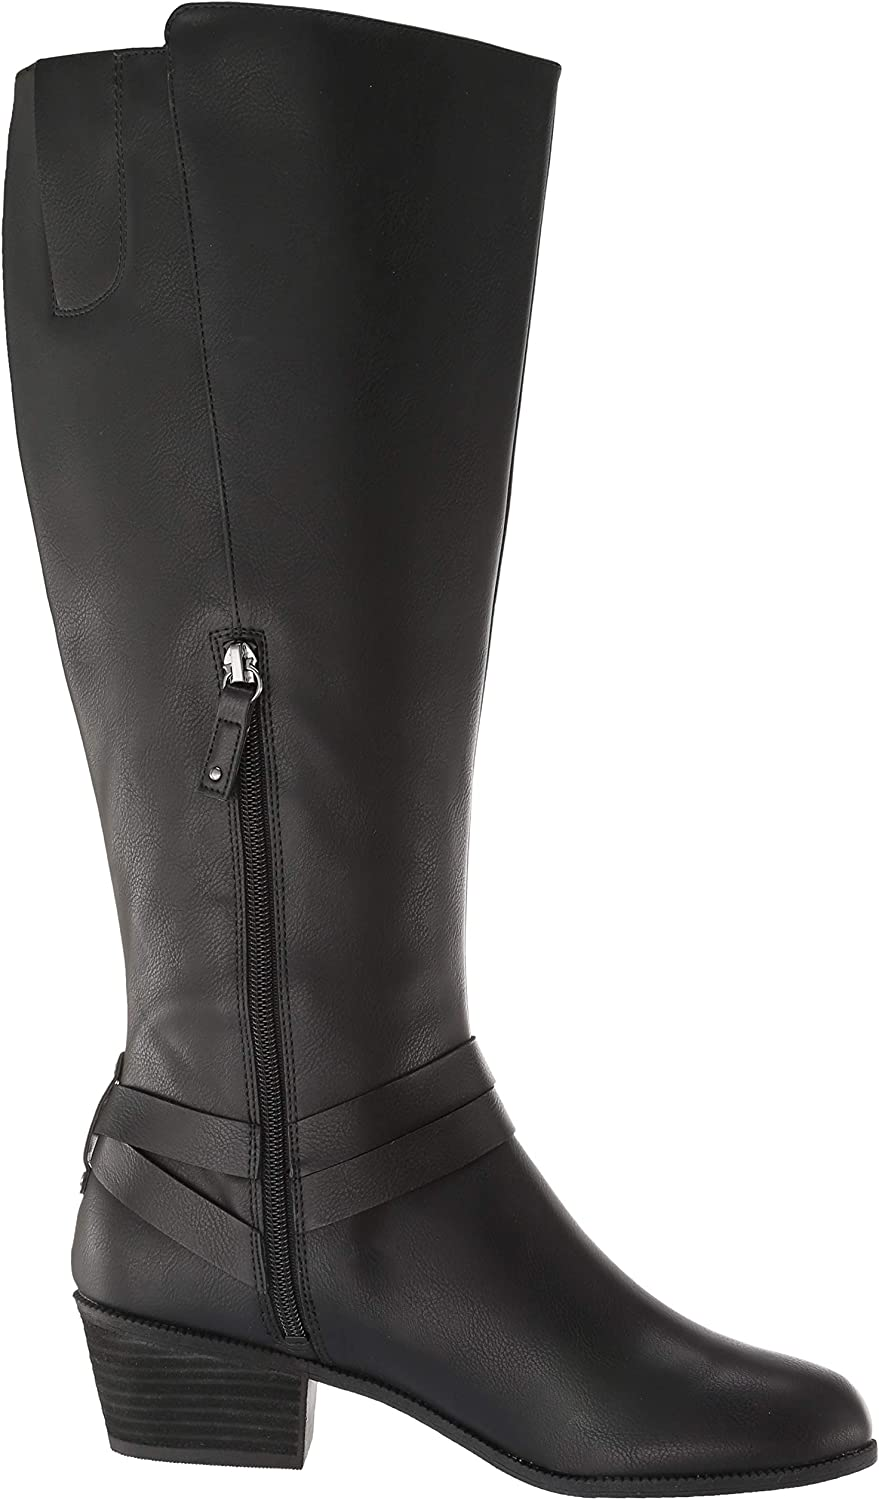 Dr 7.5 Medium//Wide Shaft US Black Smooth Scholls Shoes Womens Baker Calf Knee High Boot